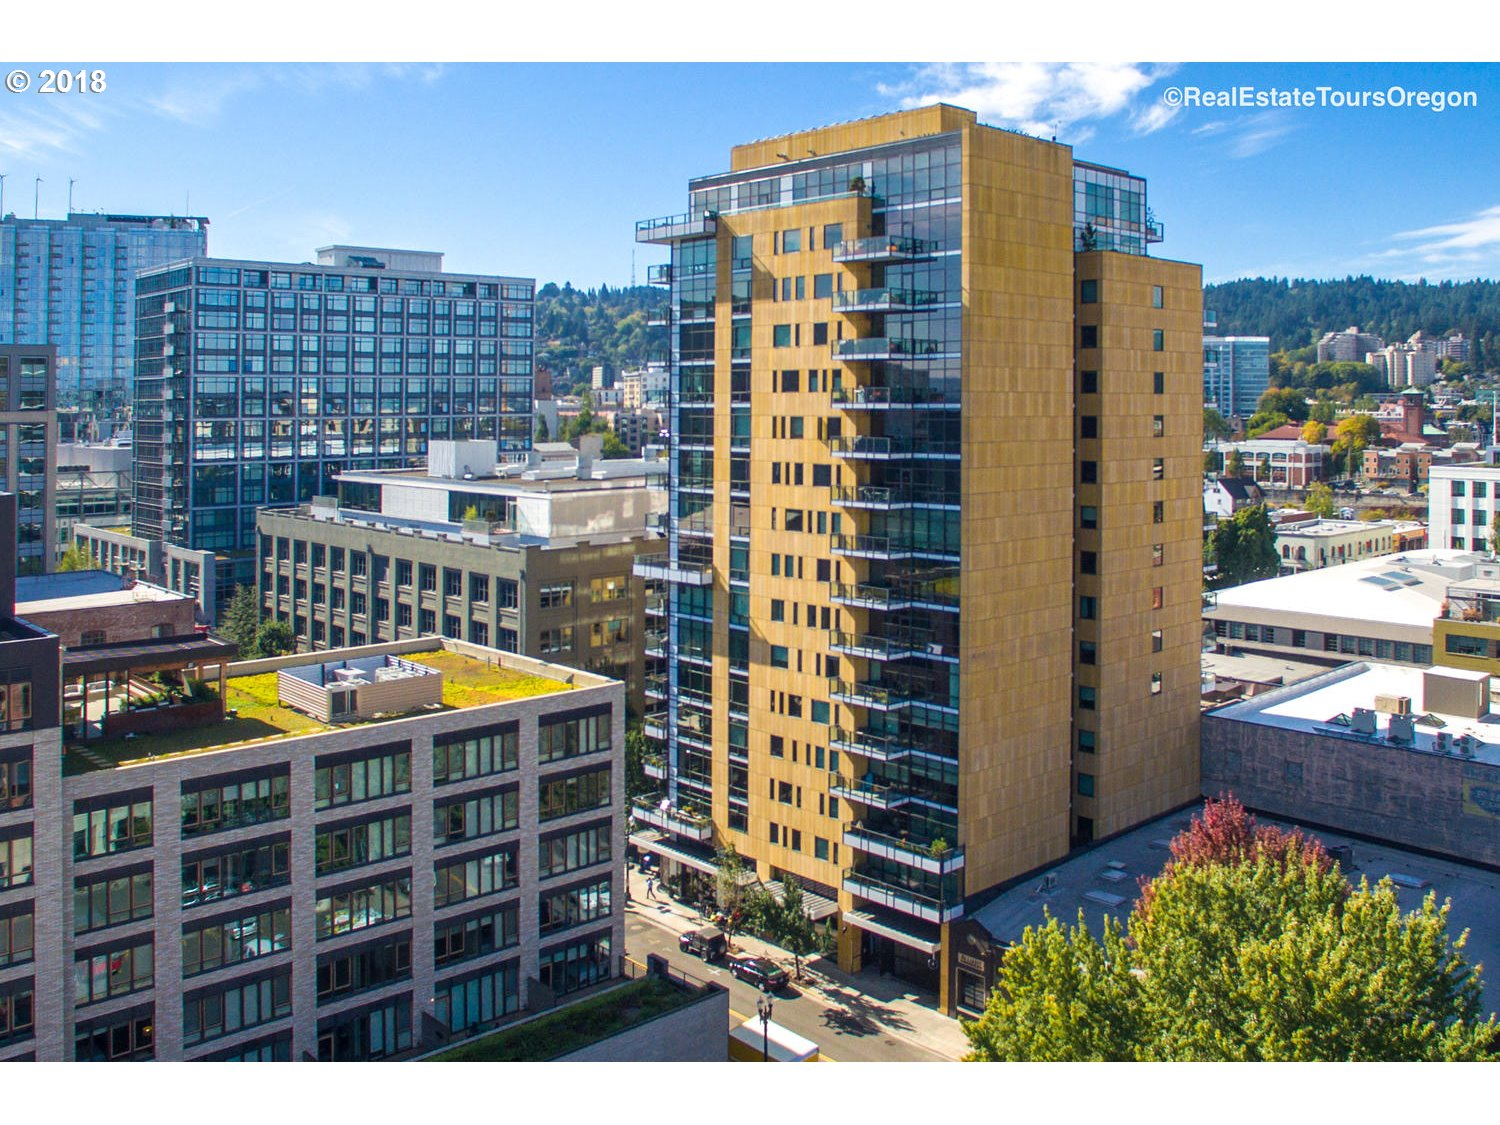 Property for sale at 311 NW 12Th AVE # 302, Portland,  OR 97209